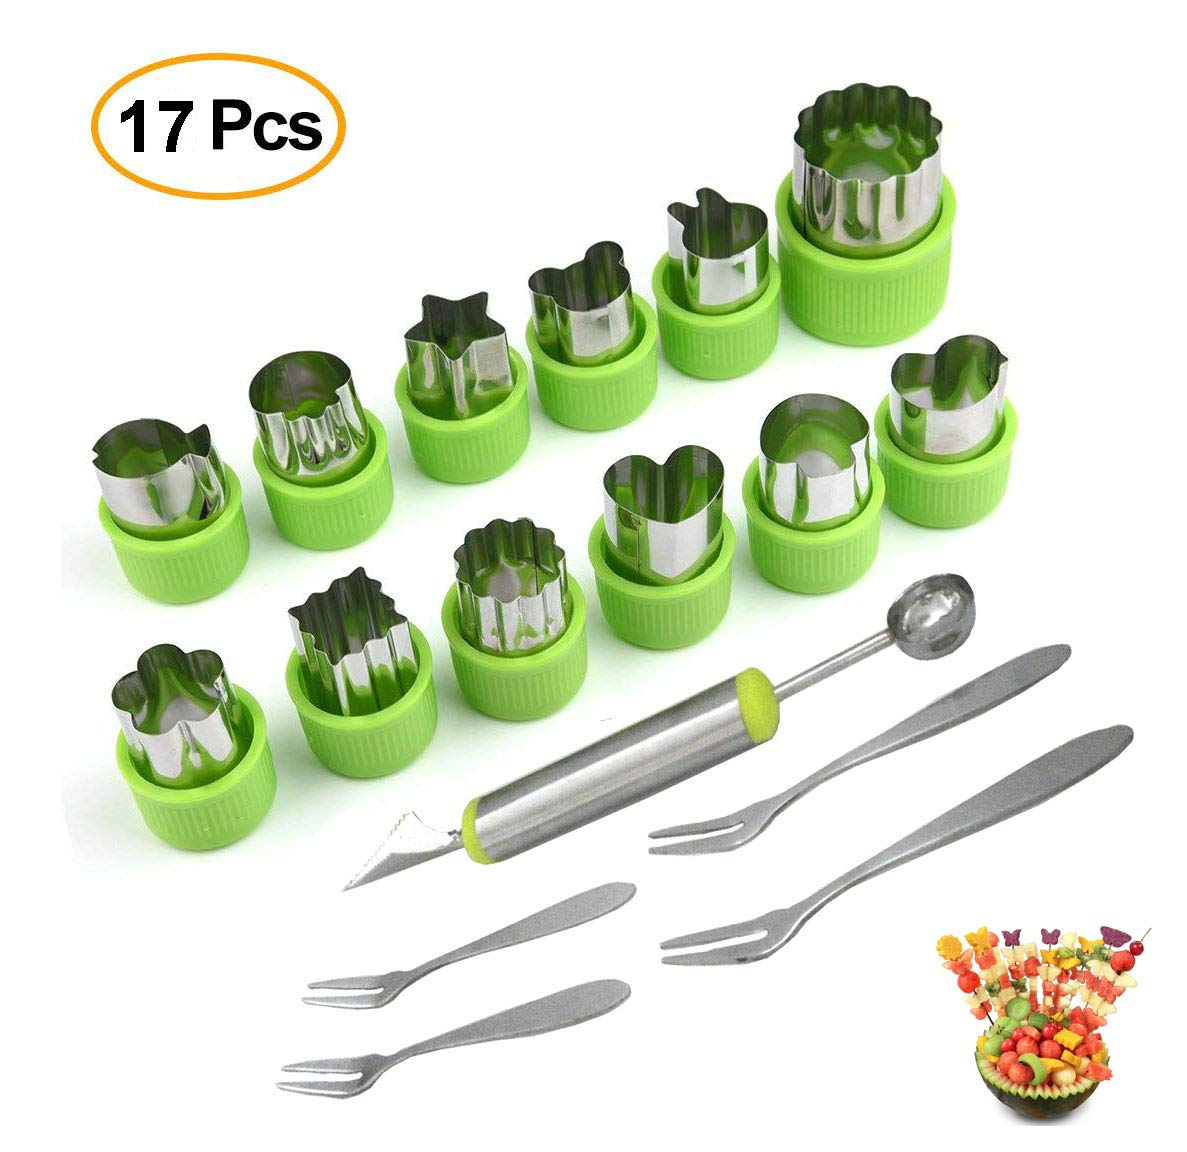 Vegetable Cutters Shapes Fruit Cutter Shapes Carving Tool Set 2 in 1 With 4pcs Fork melon baller Ice Cream Scooper Cookie Cutter Decorative Baking for Kids—17PCS